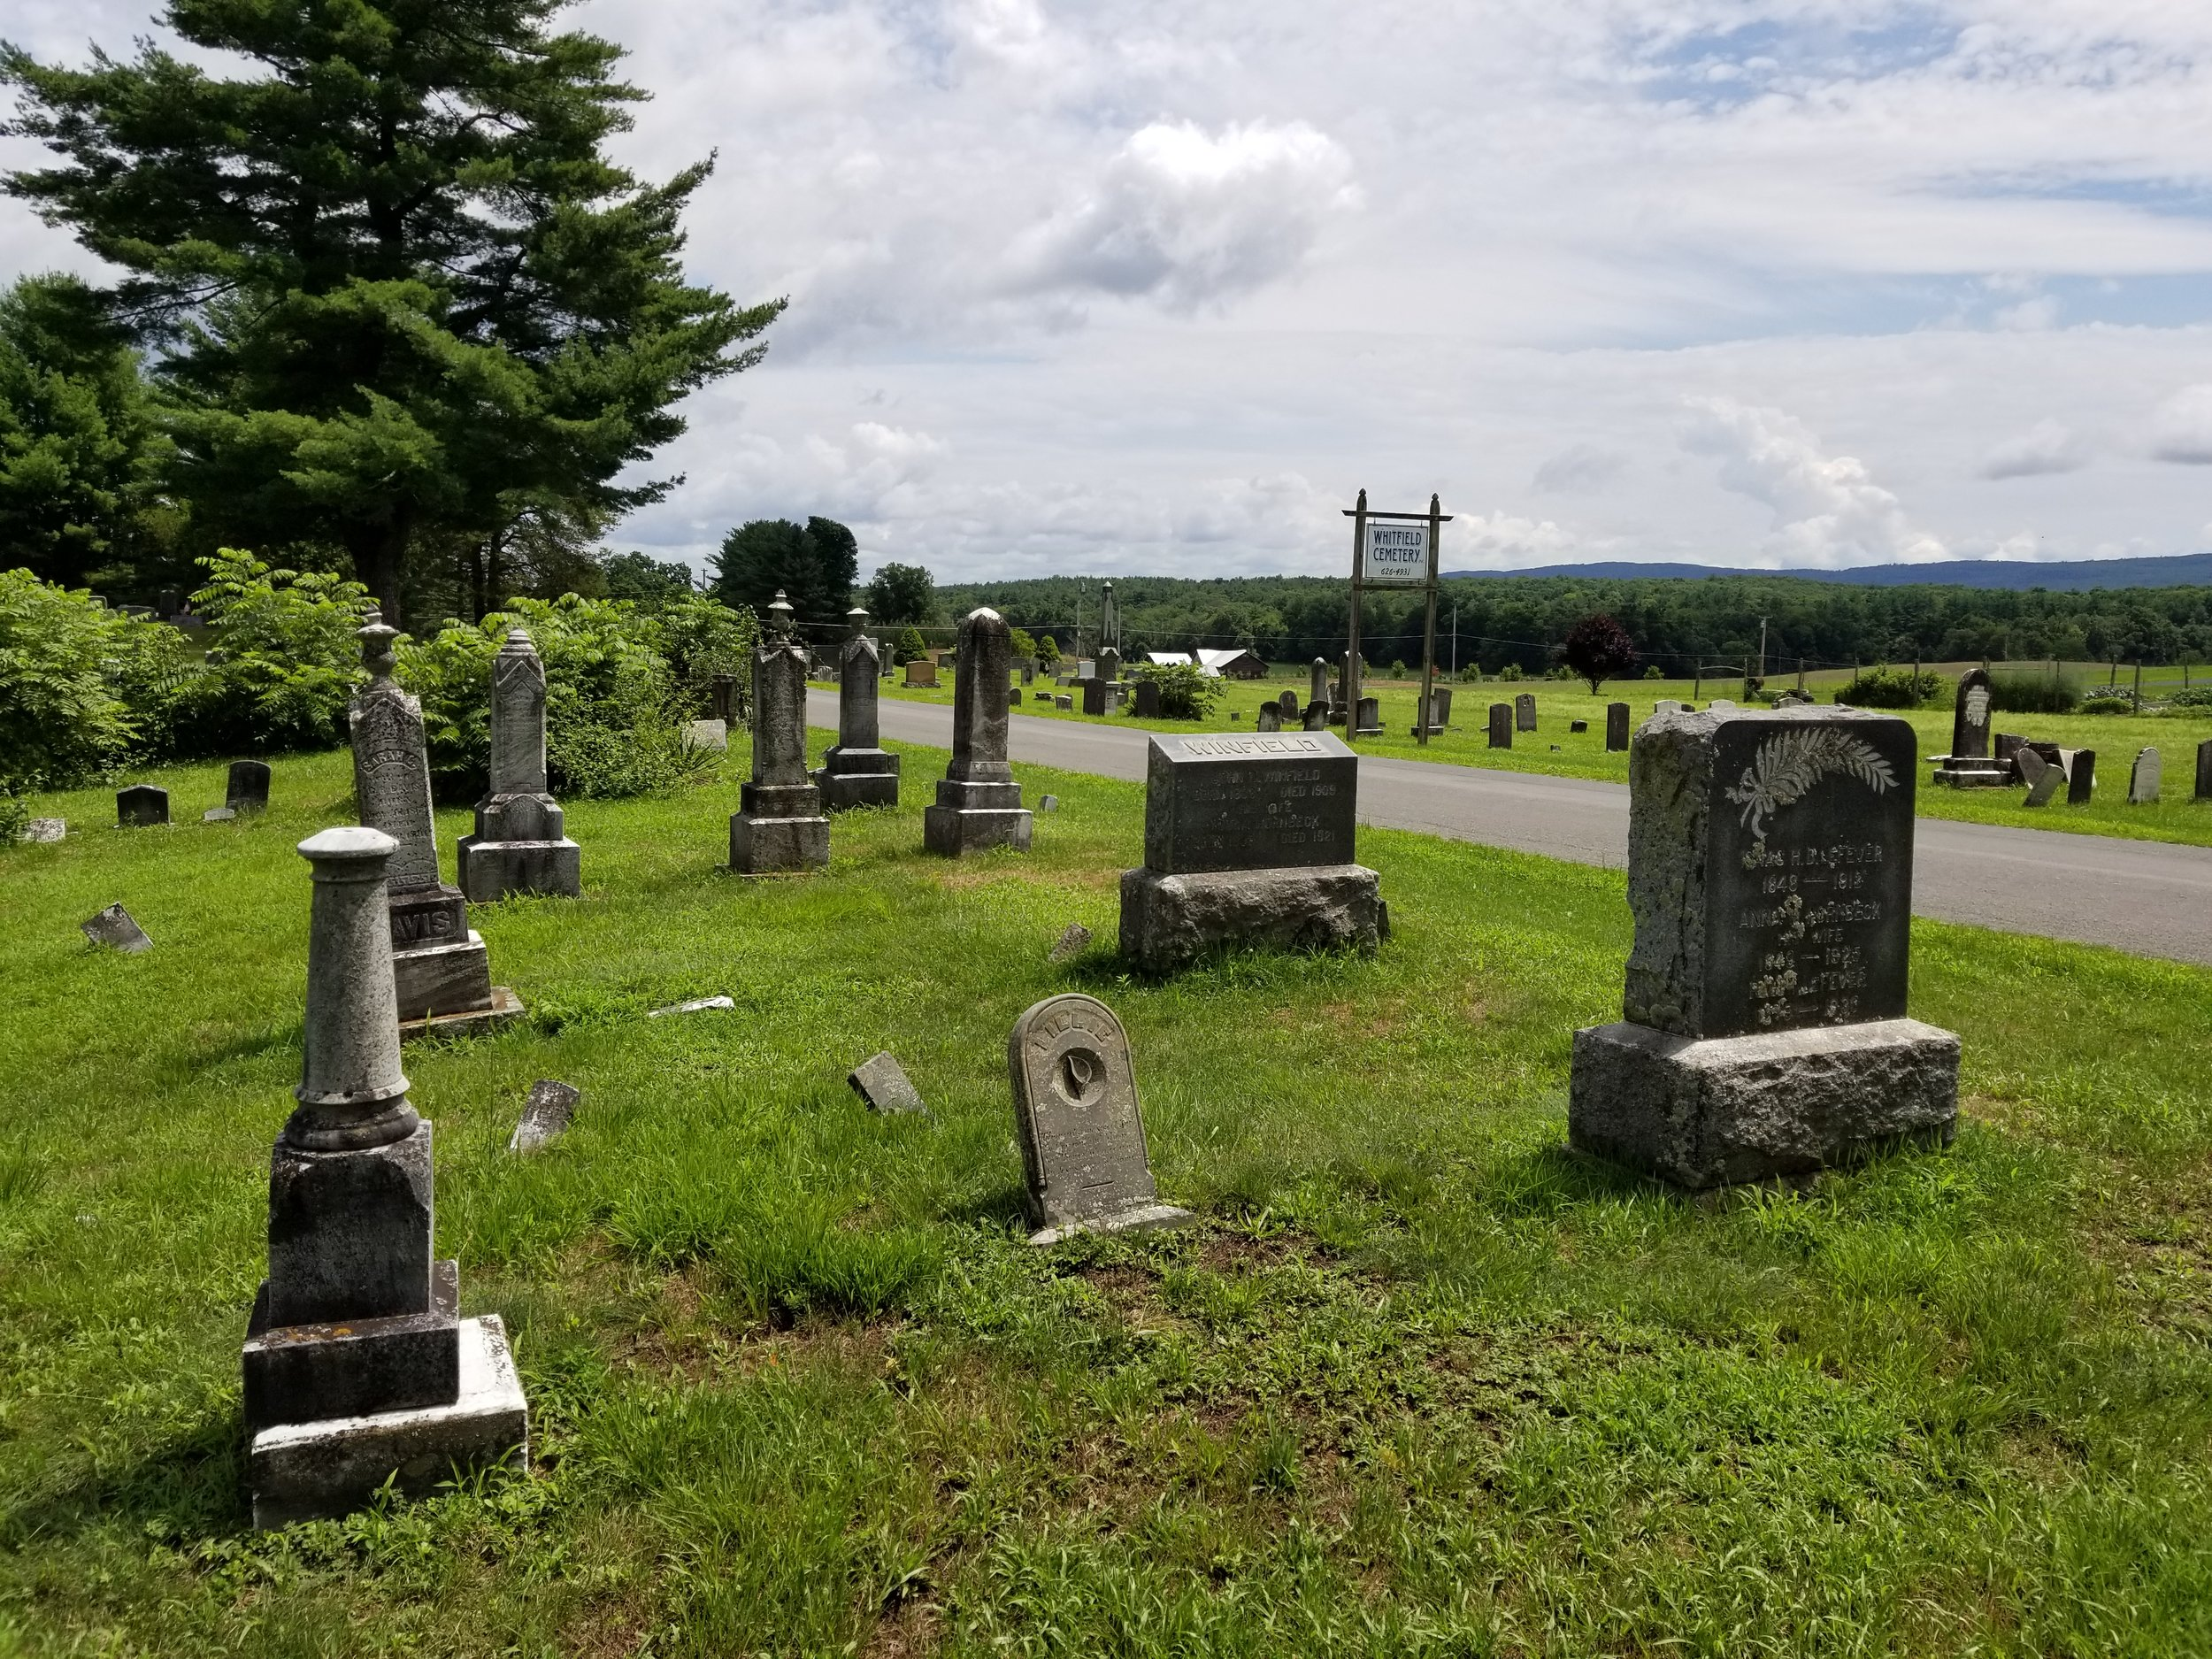 whitfield cemetEry on airport rd